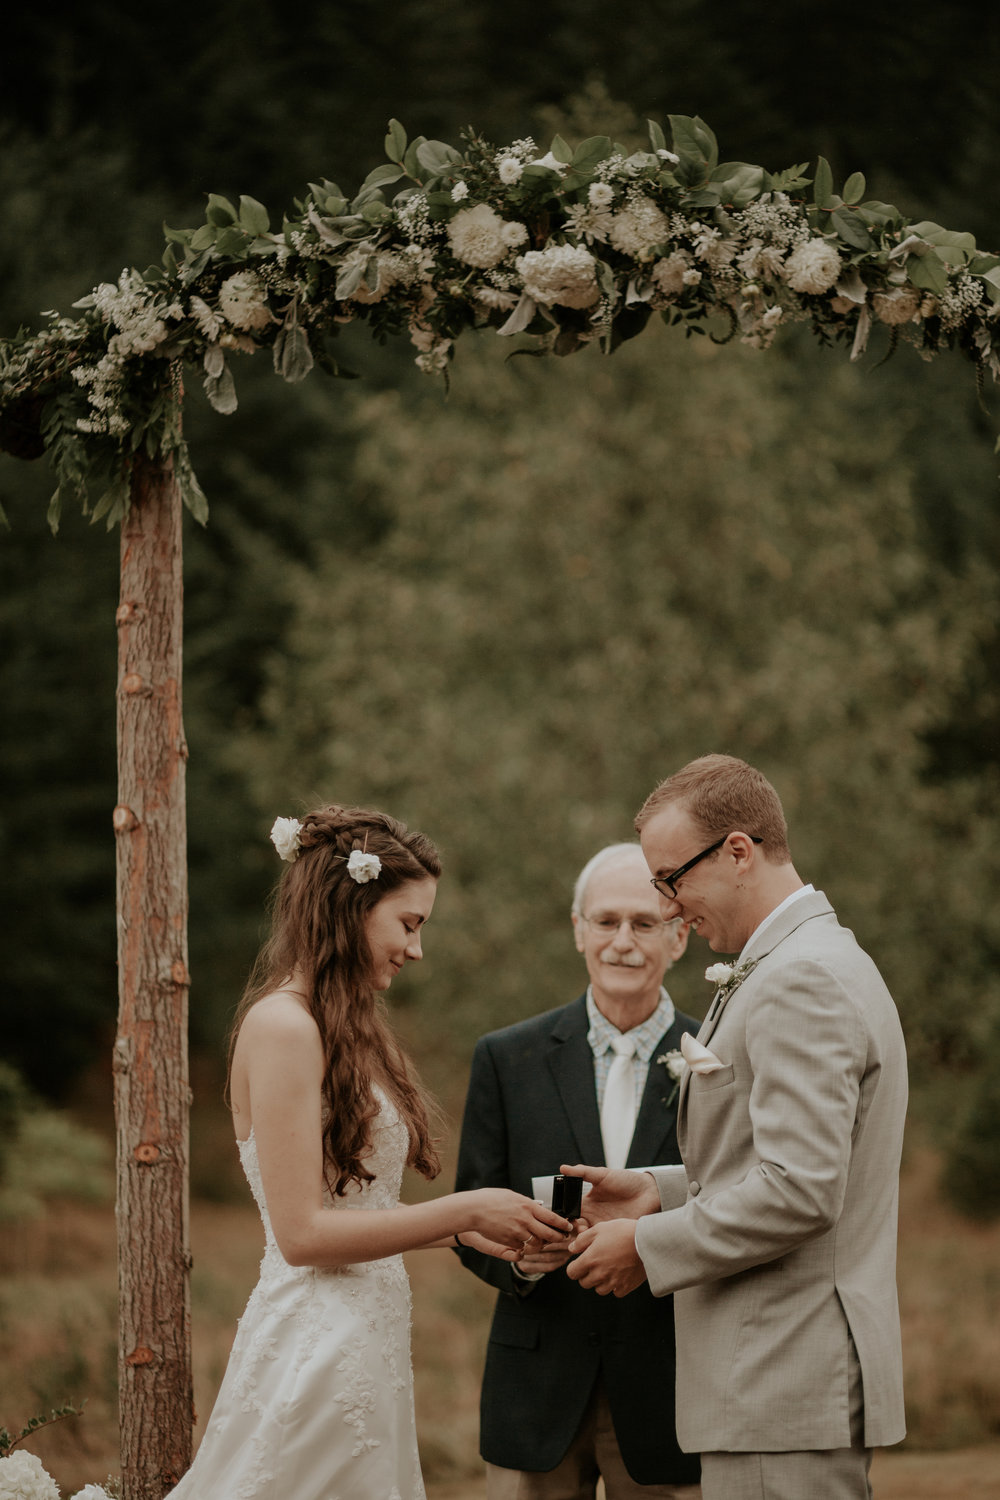 Port-Angeles-elopement-wedding-pnw-olympic-peninsula-photographer-portrait-kayladawnphoto-kayla-dawn-photography-olympic-national-park-78.jpg